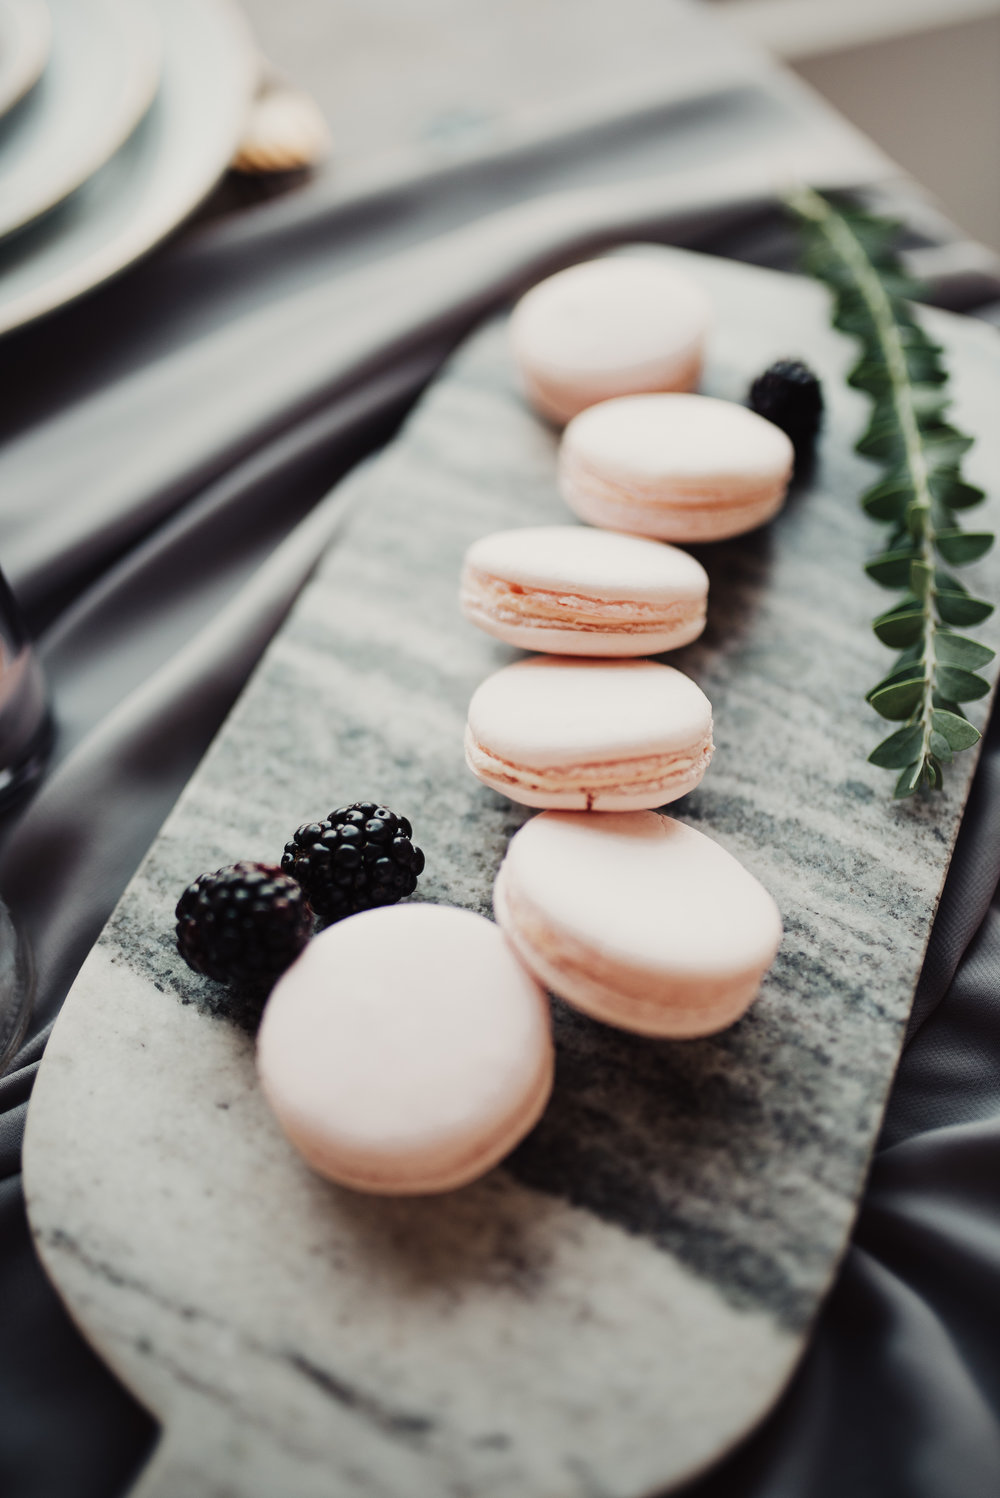 rasperry-wedding-macaroons.jpg